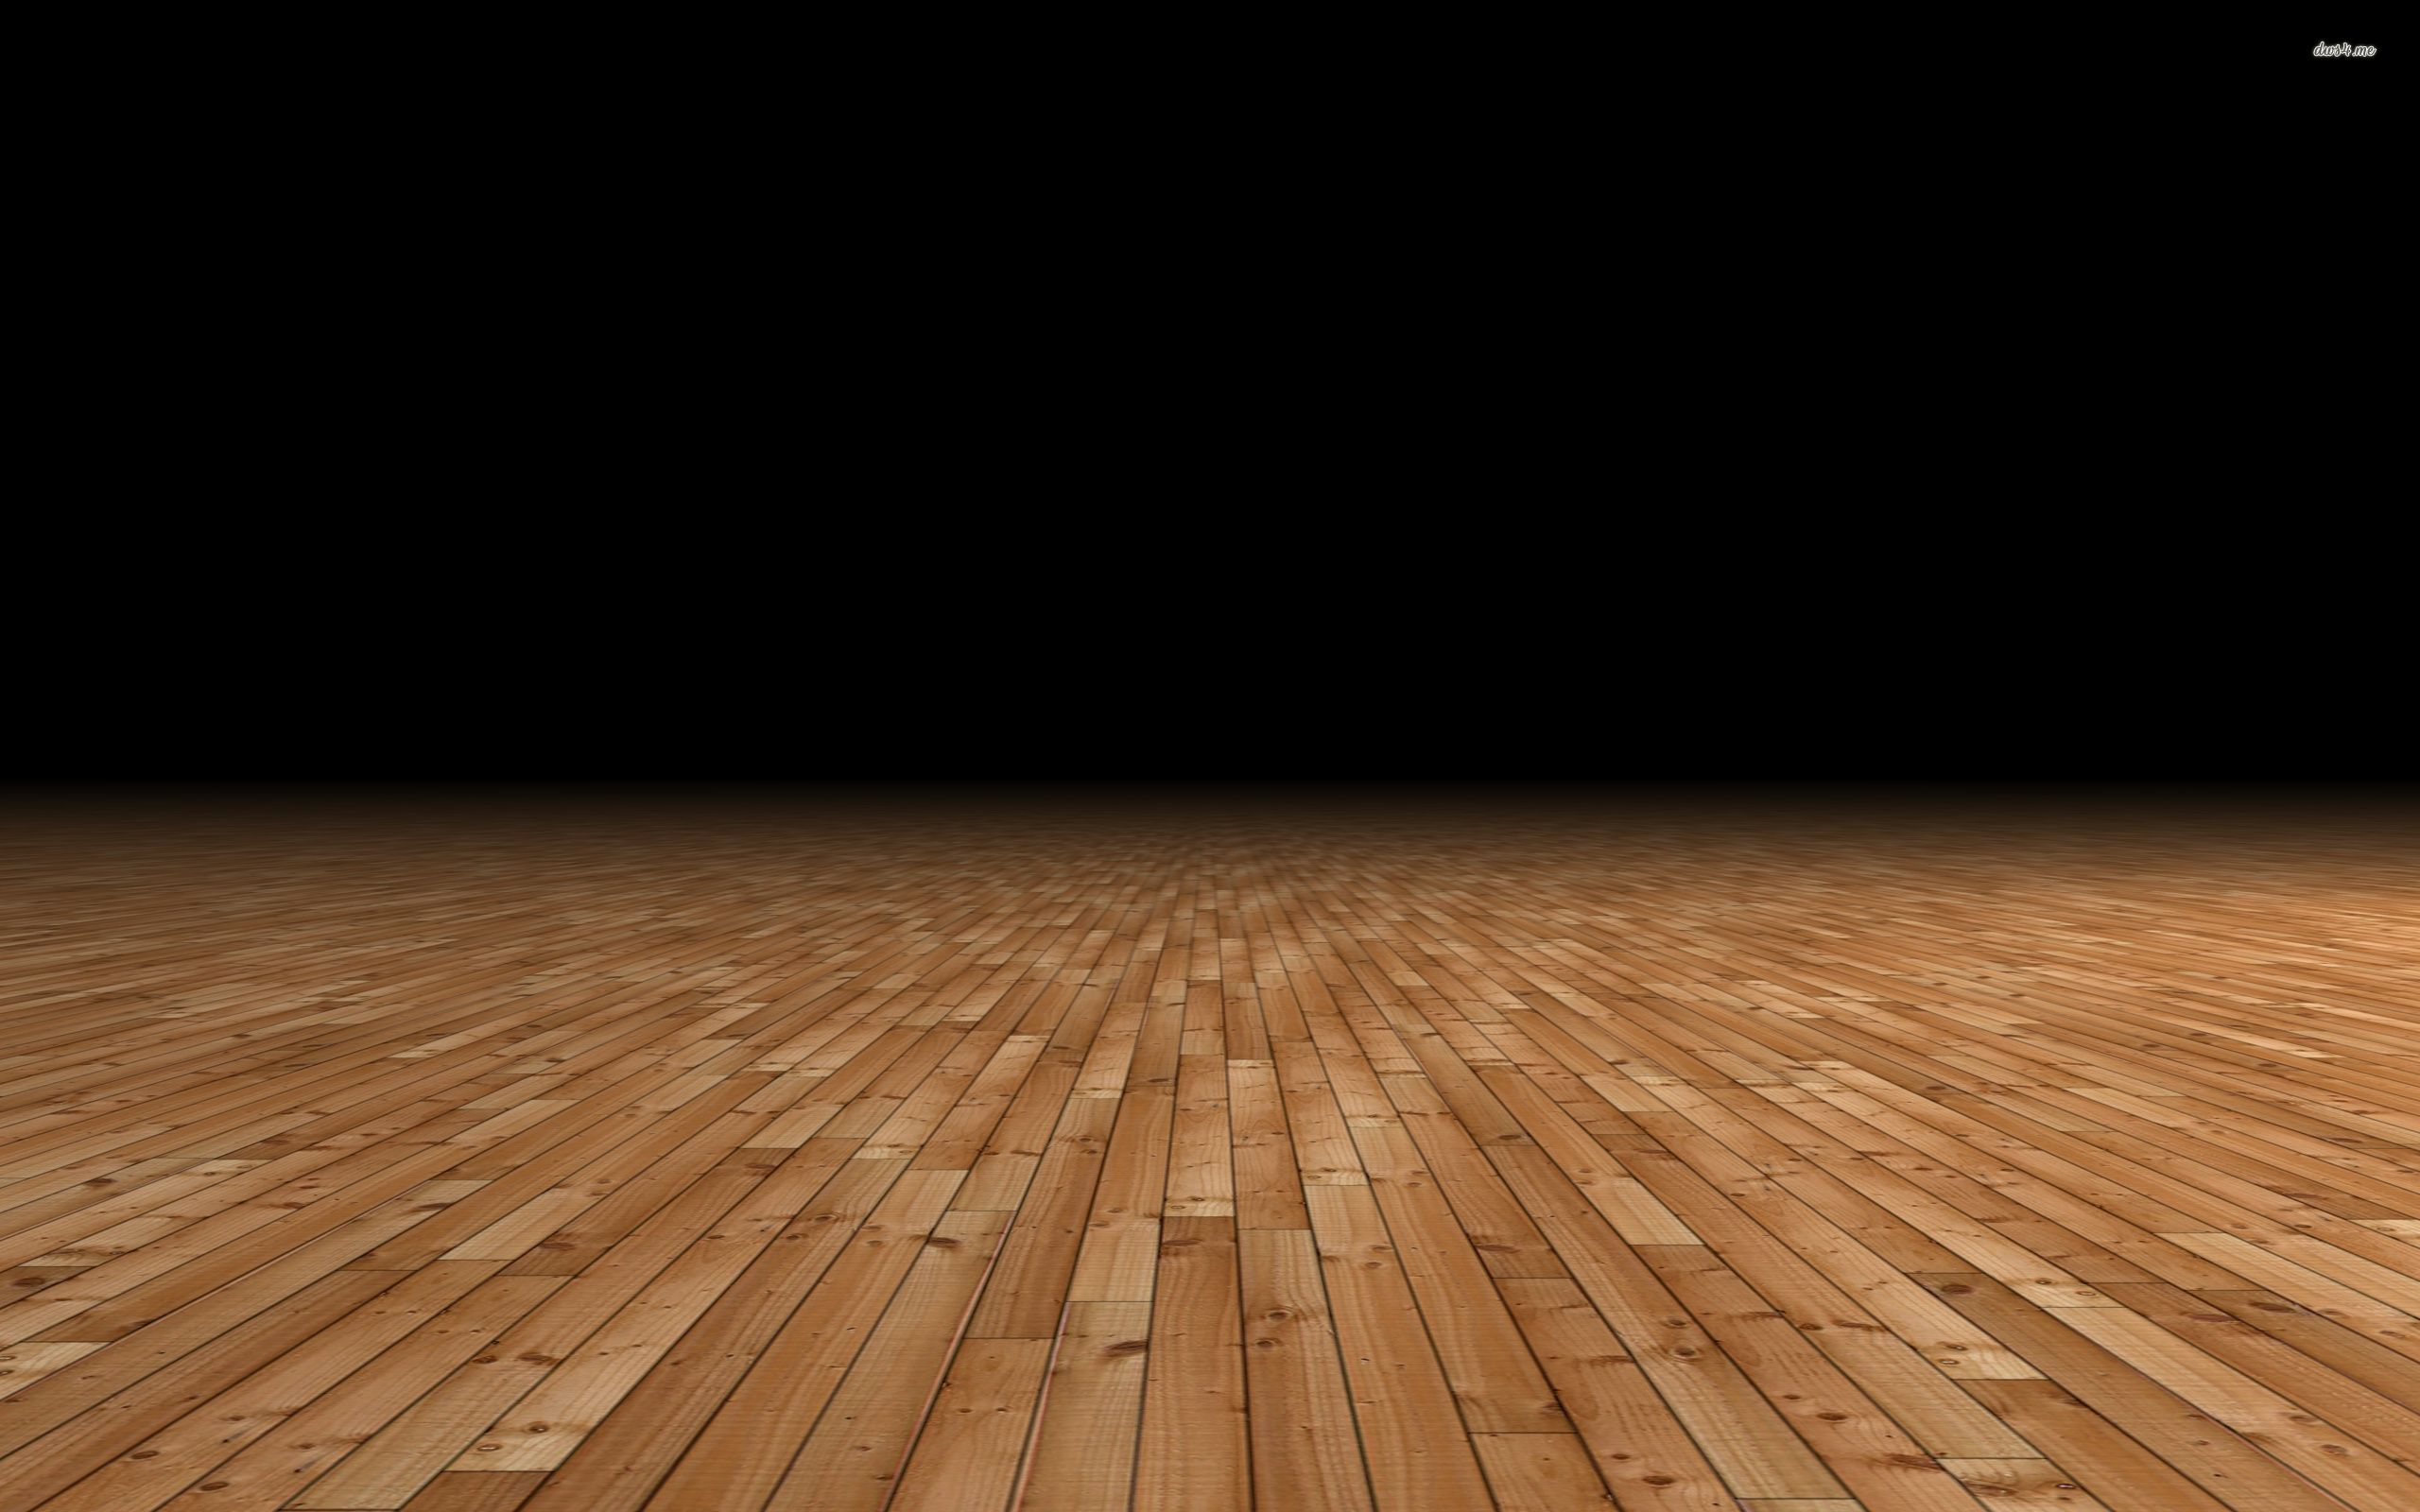 Light Up The Floor European Wood Flooring Consumption Starting To Recover